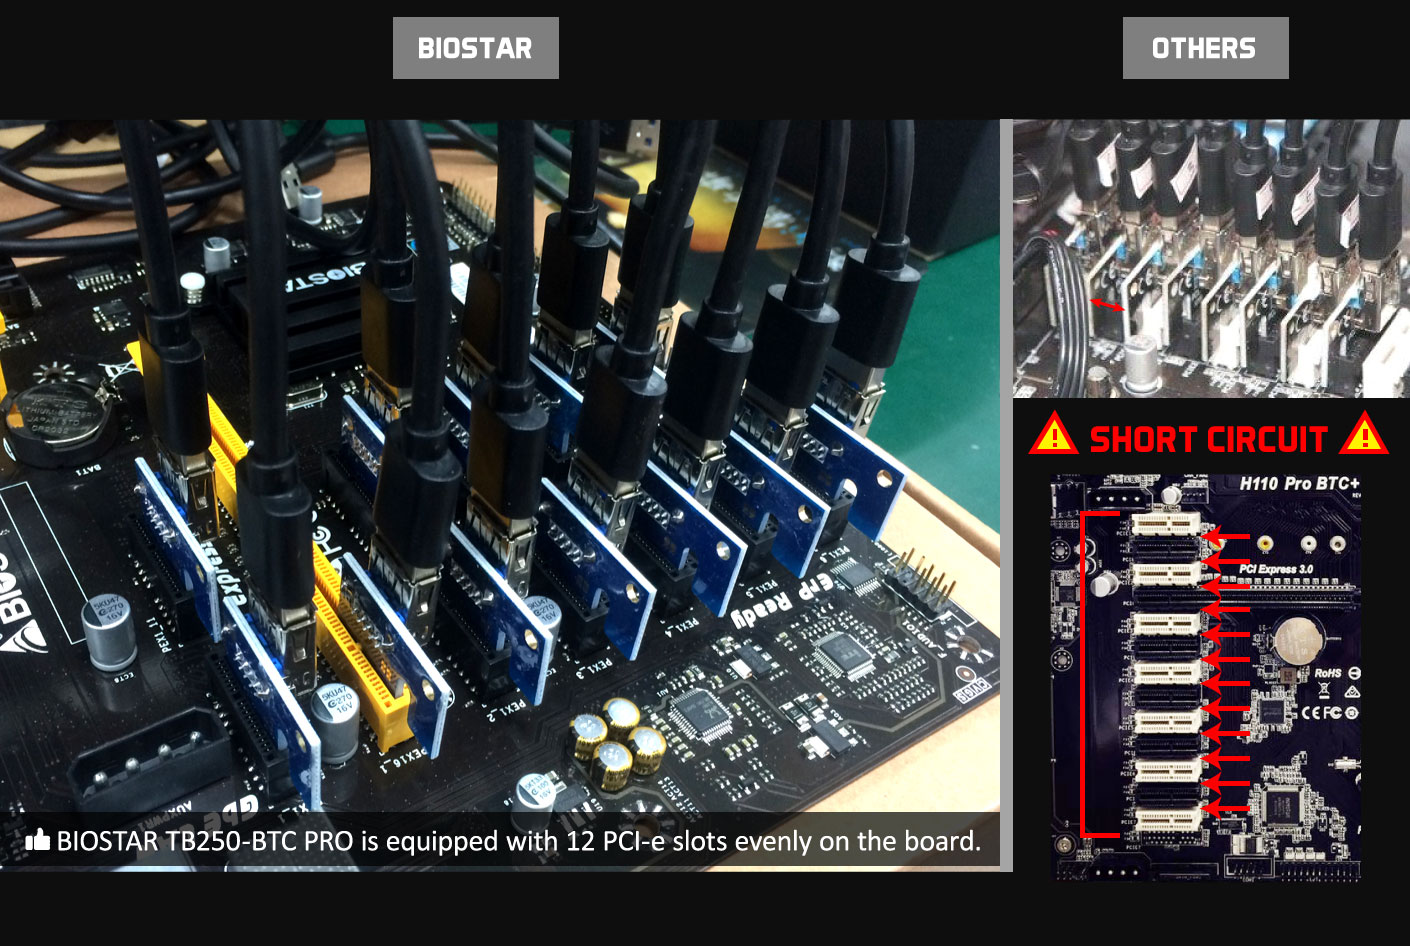 Biostar's TB250-BTC PRO motherboard supports up to 12 GPUs for mining